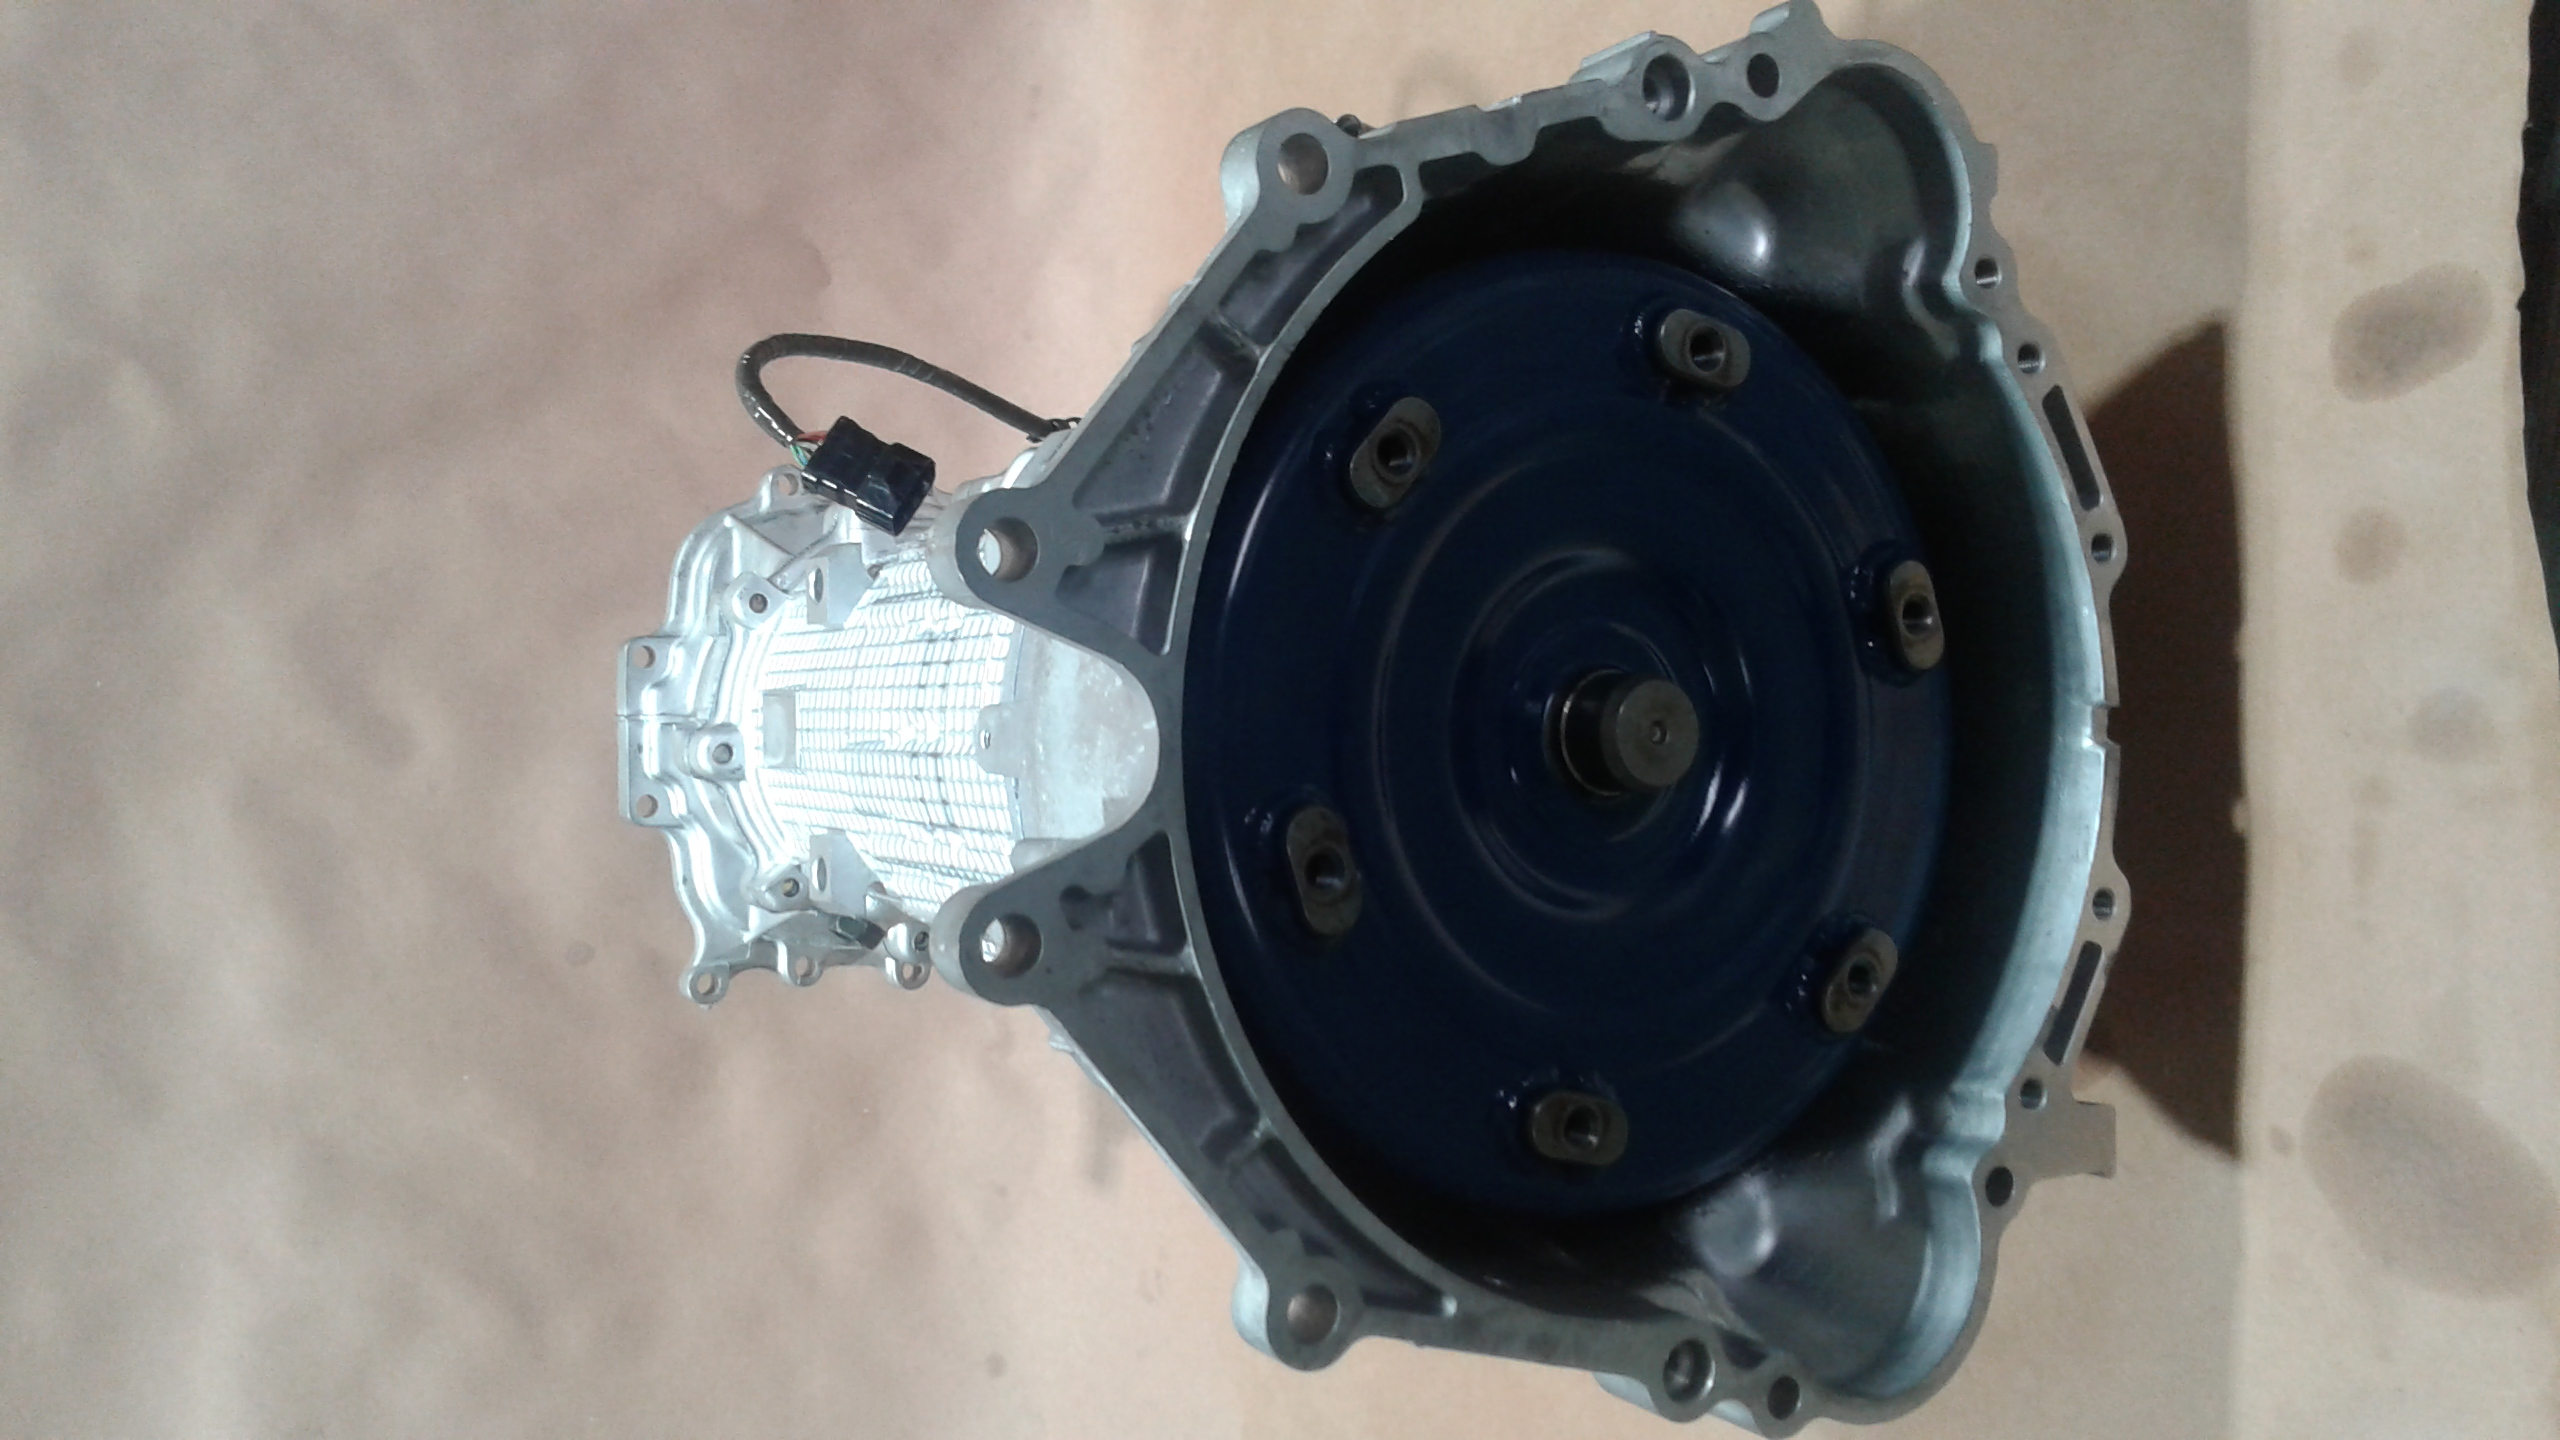 Mitsubishi Transmission Rebuilt 2001 2002 Montero Limited 5spd V5a51 Automatic Pictures Of Transmissions Are For Only Reference Not Actual Product